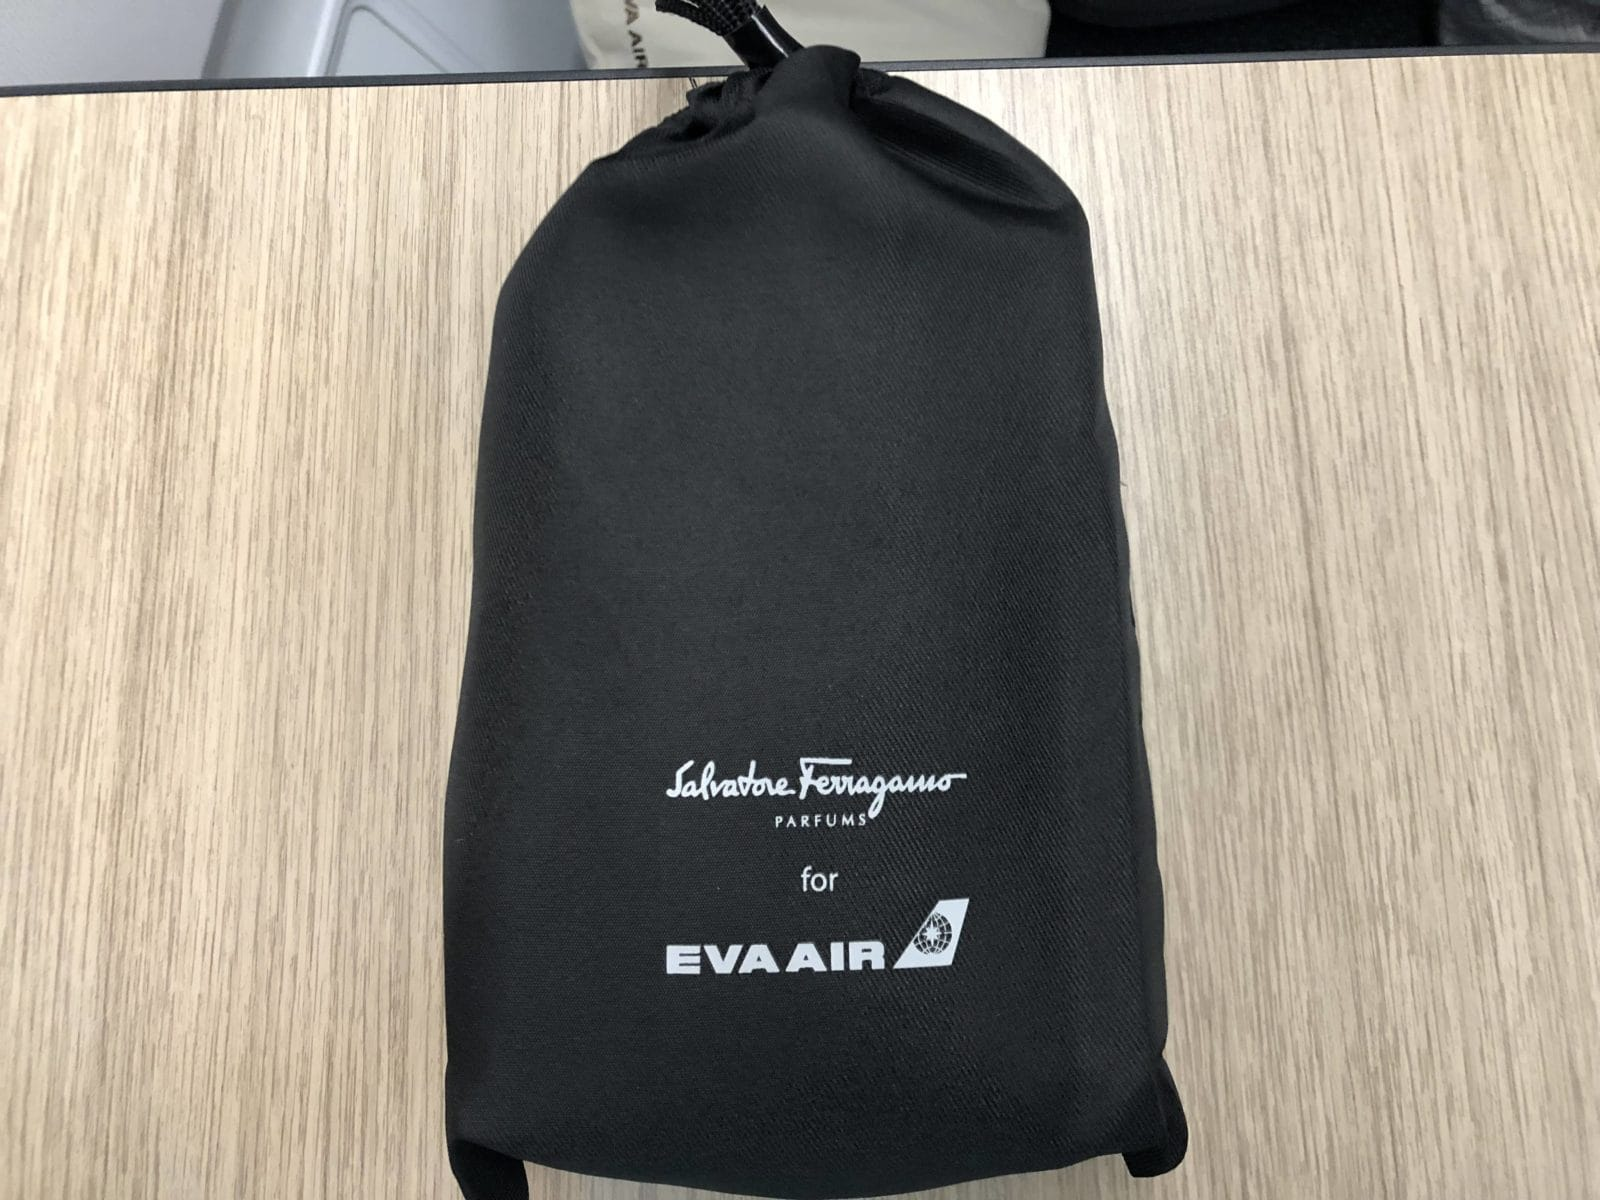 EVA Air Business Class A330-300 Amenity Kit eingepackt